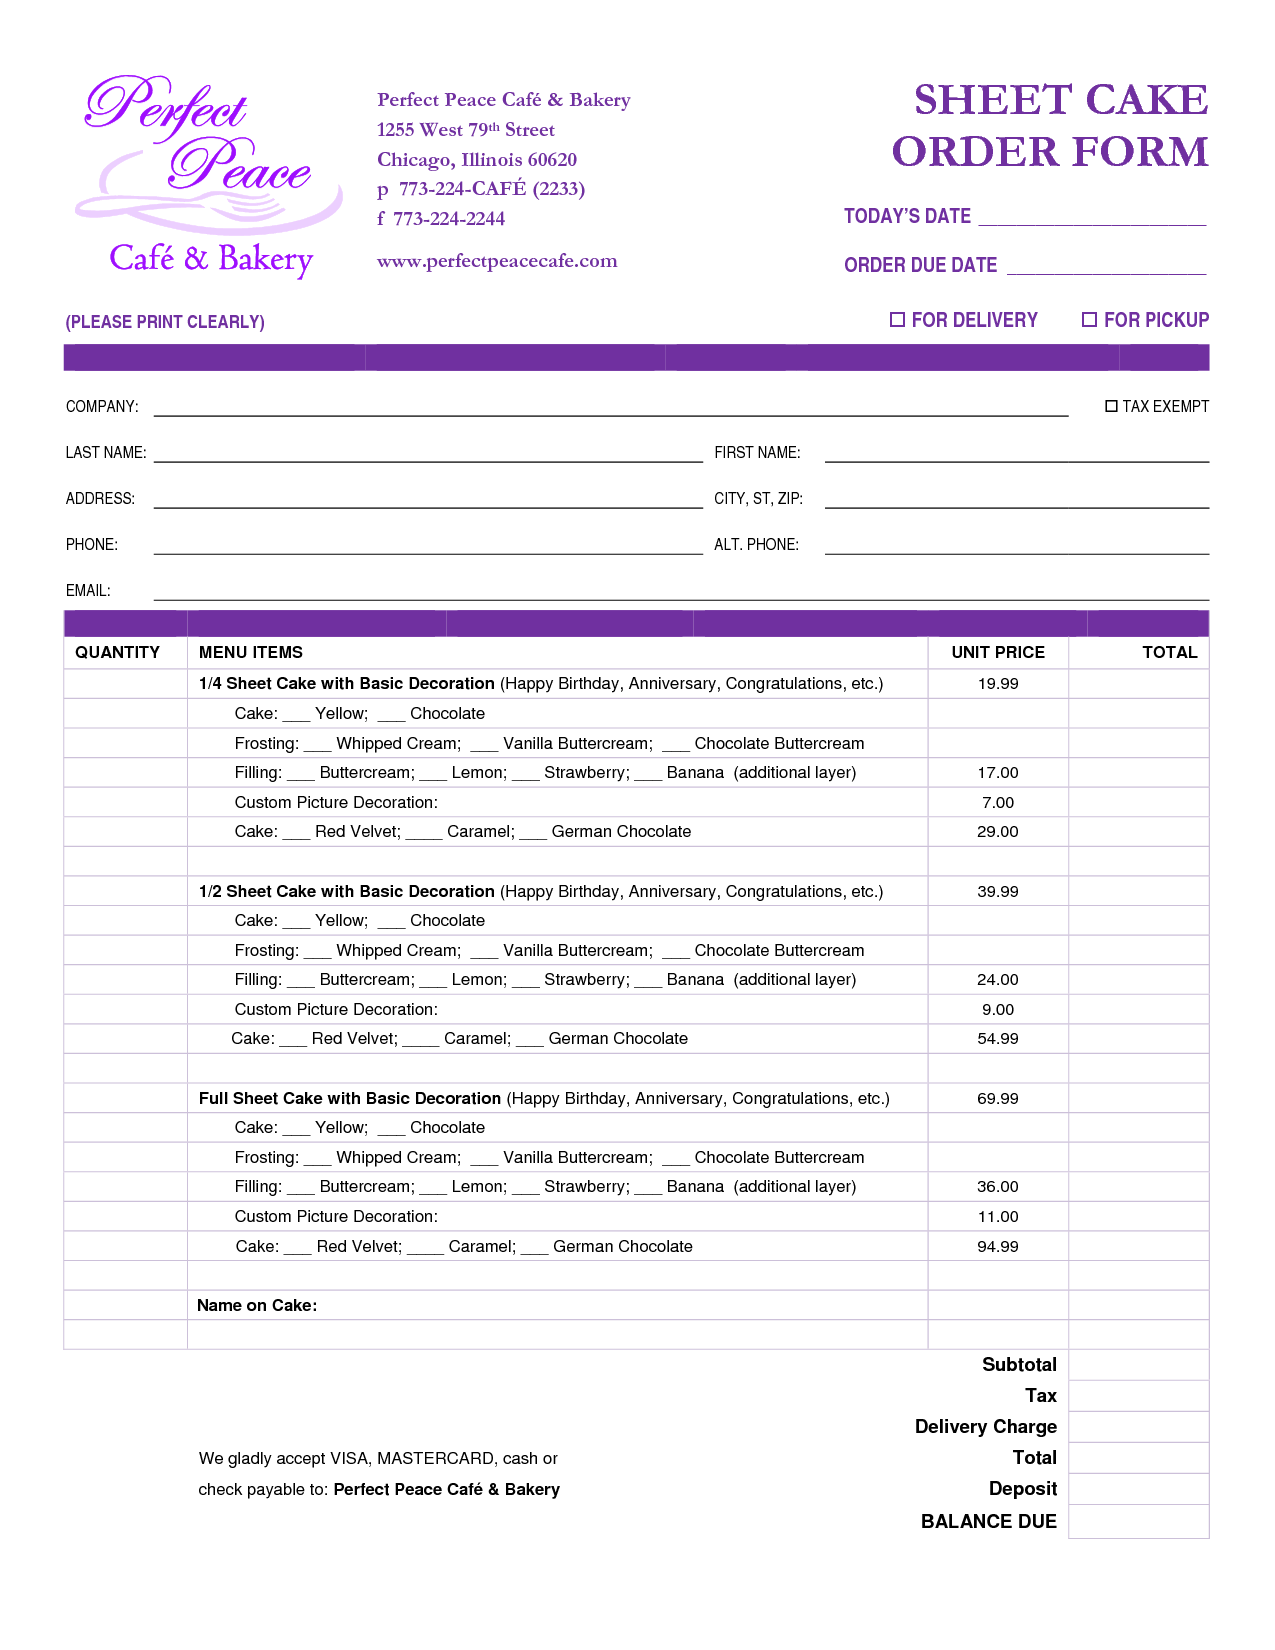 Bakery Invoice Template and Cake order form Template Free Google Search Projects